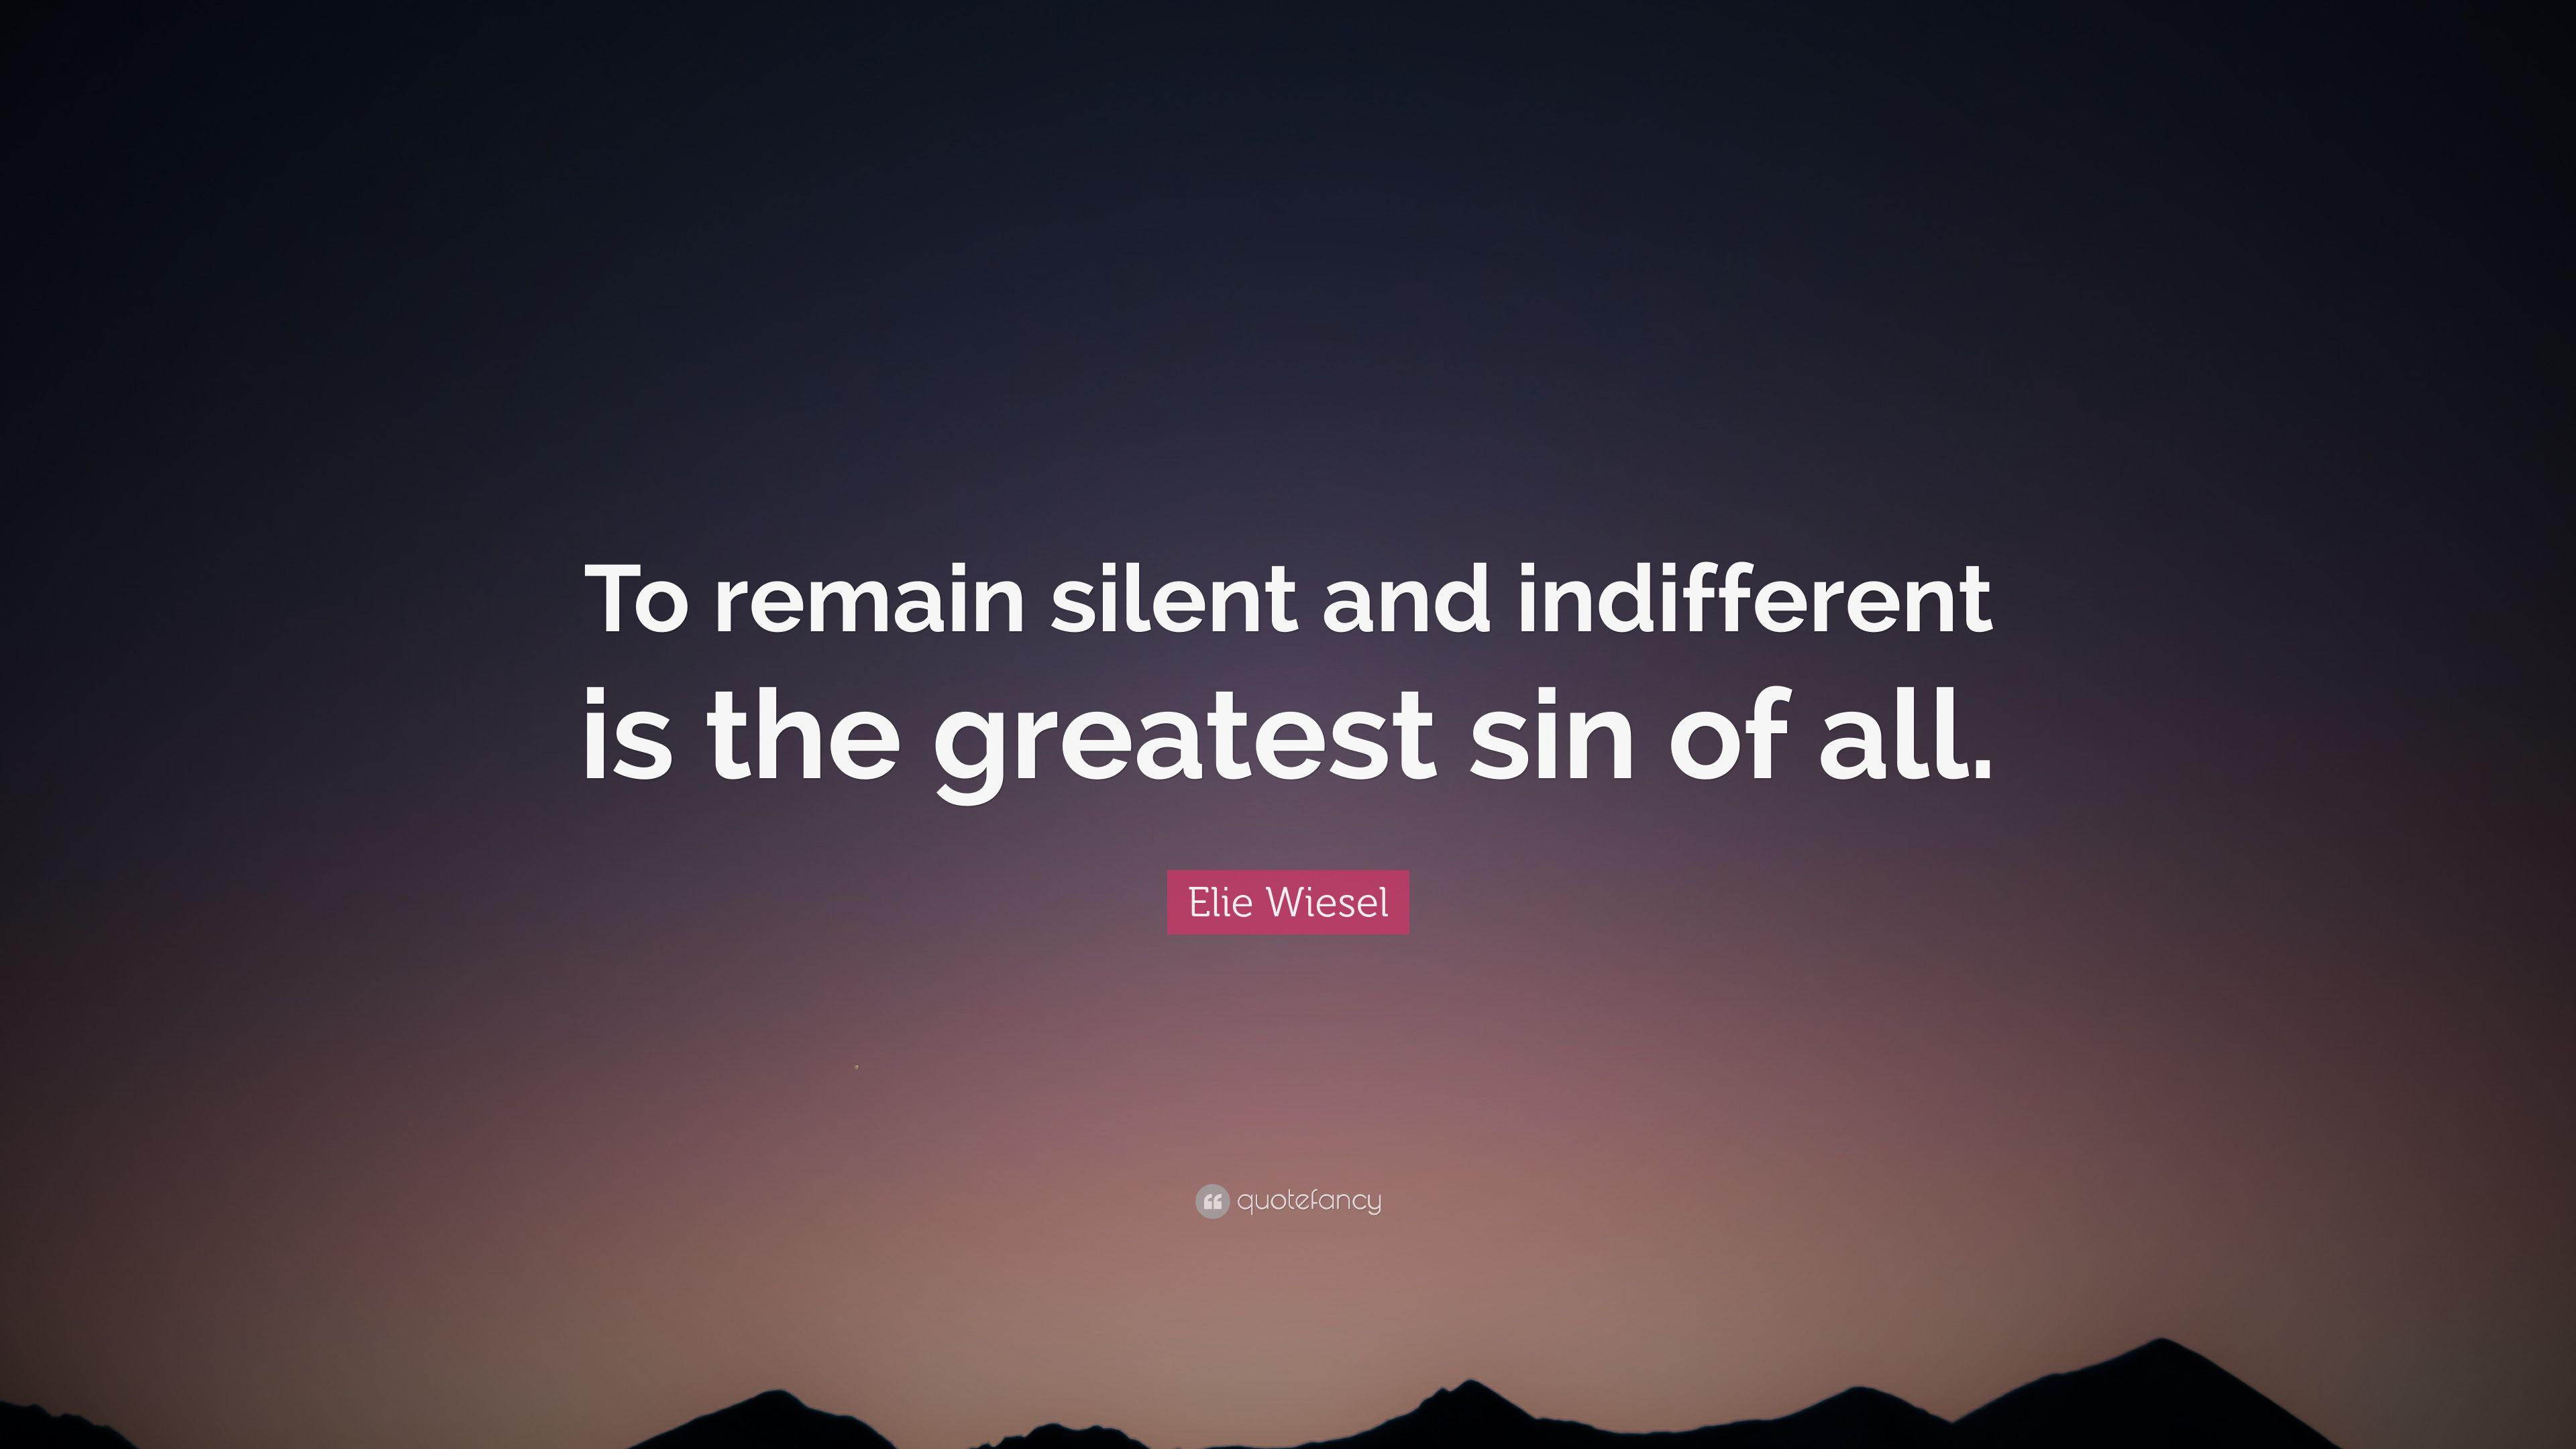 Elie wiesel quote to remain silent and indifferent is the greatest sin of all